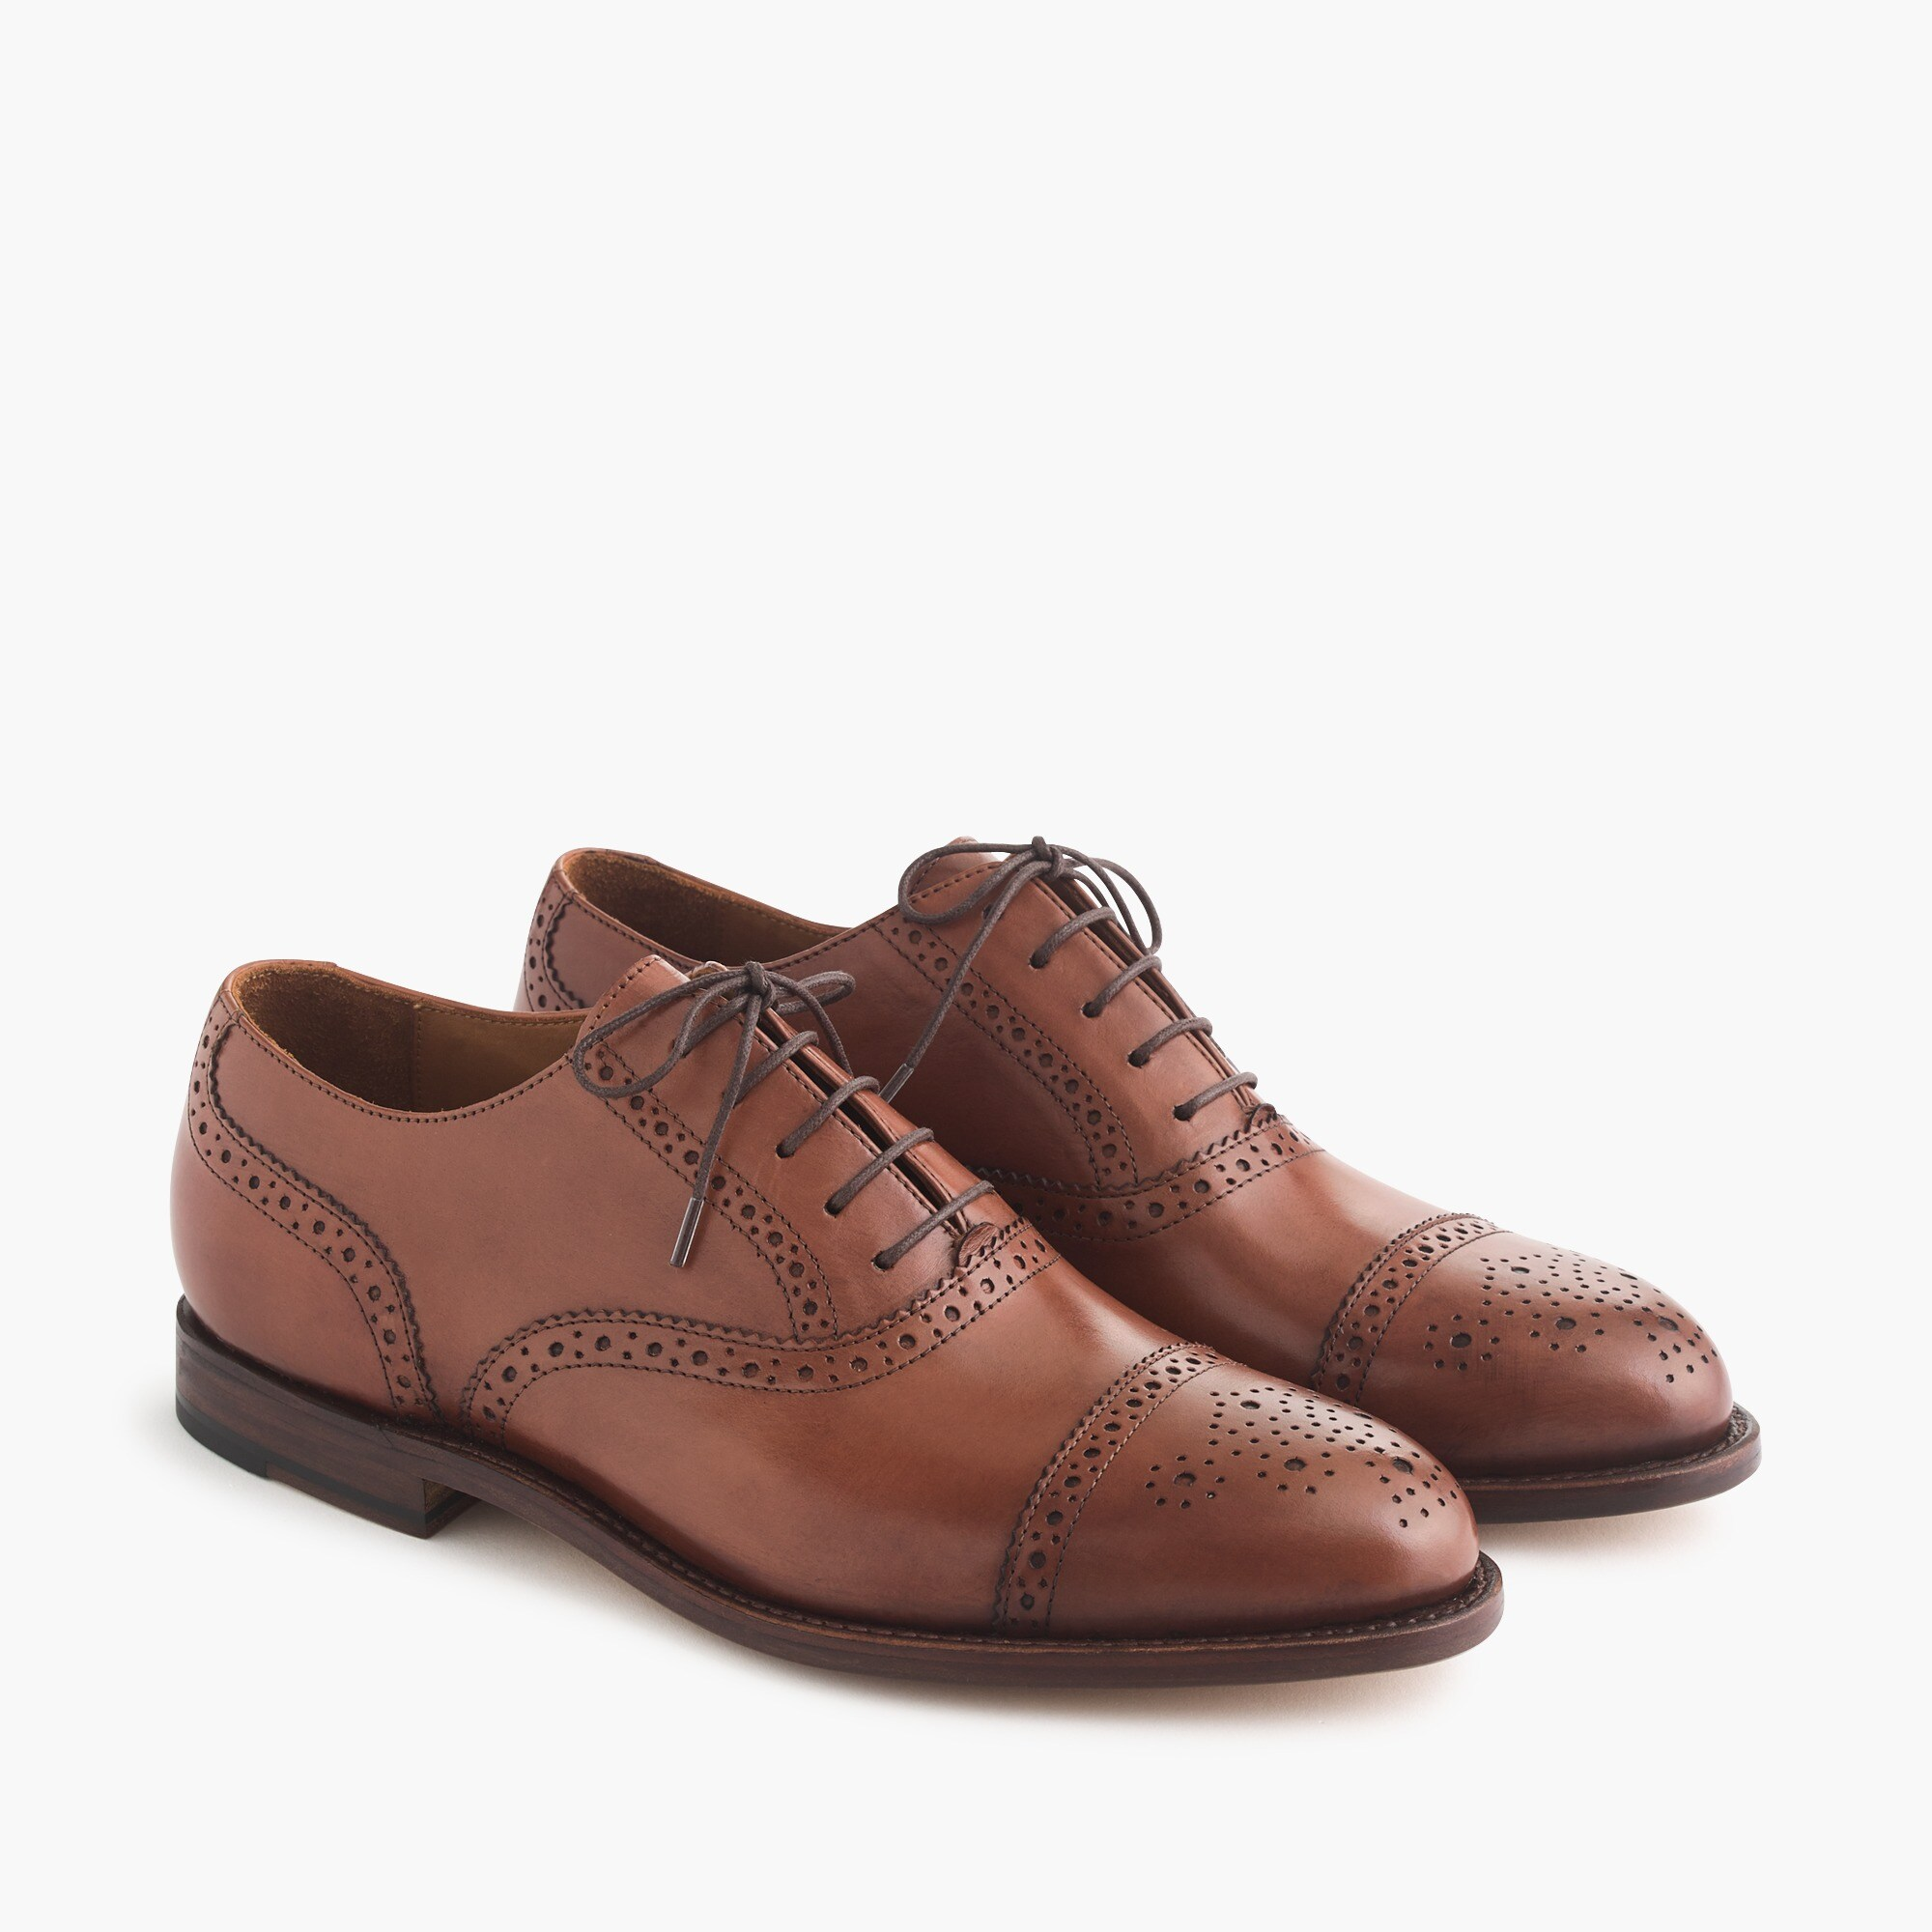 Image 1 for Ludlow semi-brogue oxfords